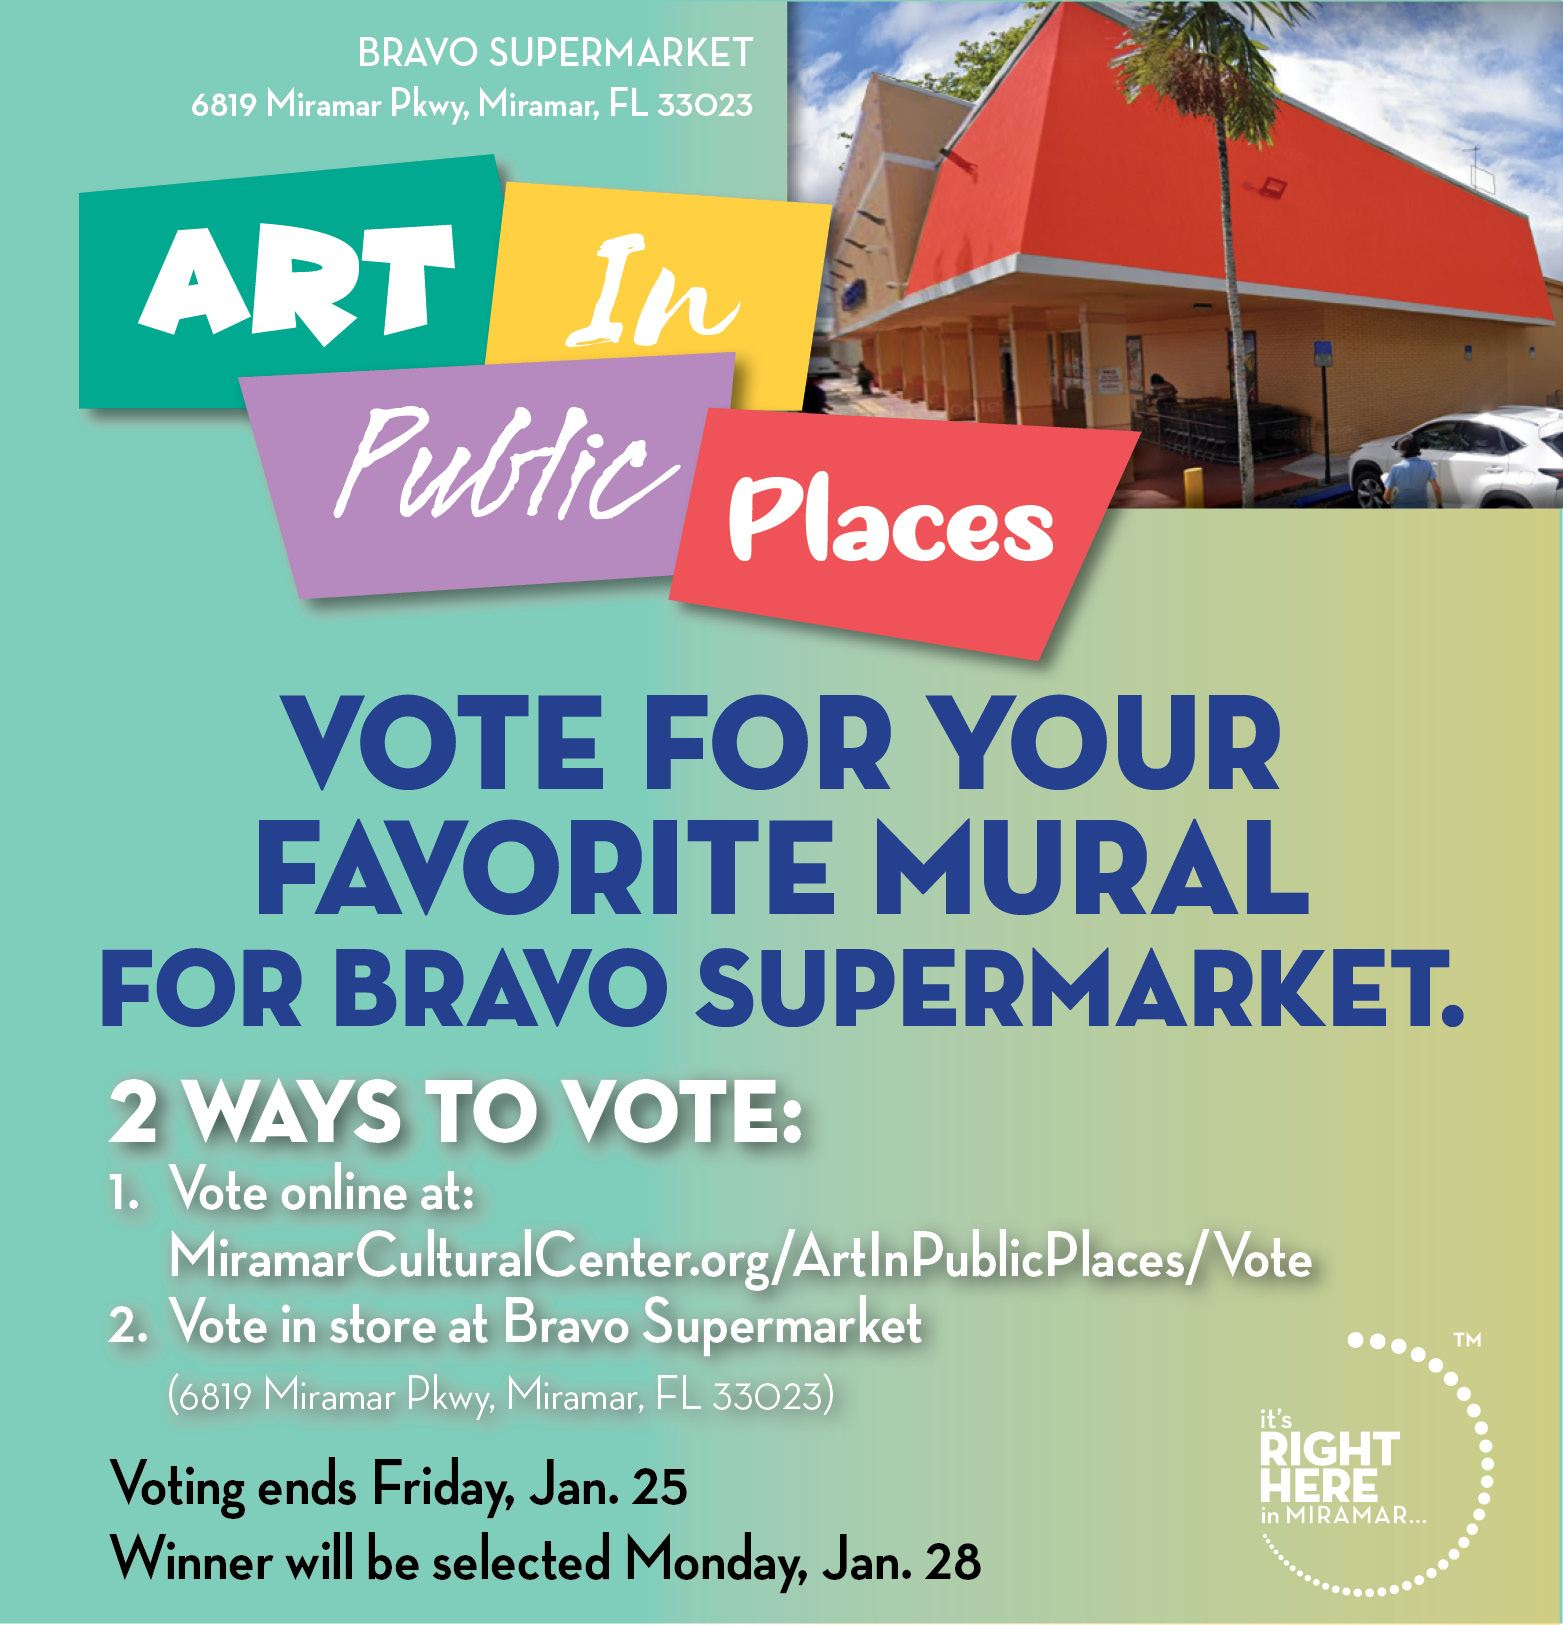 Art in Public Places Vote - News